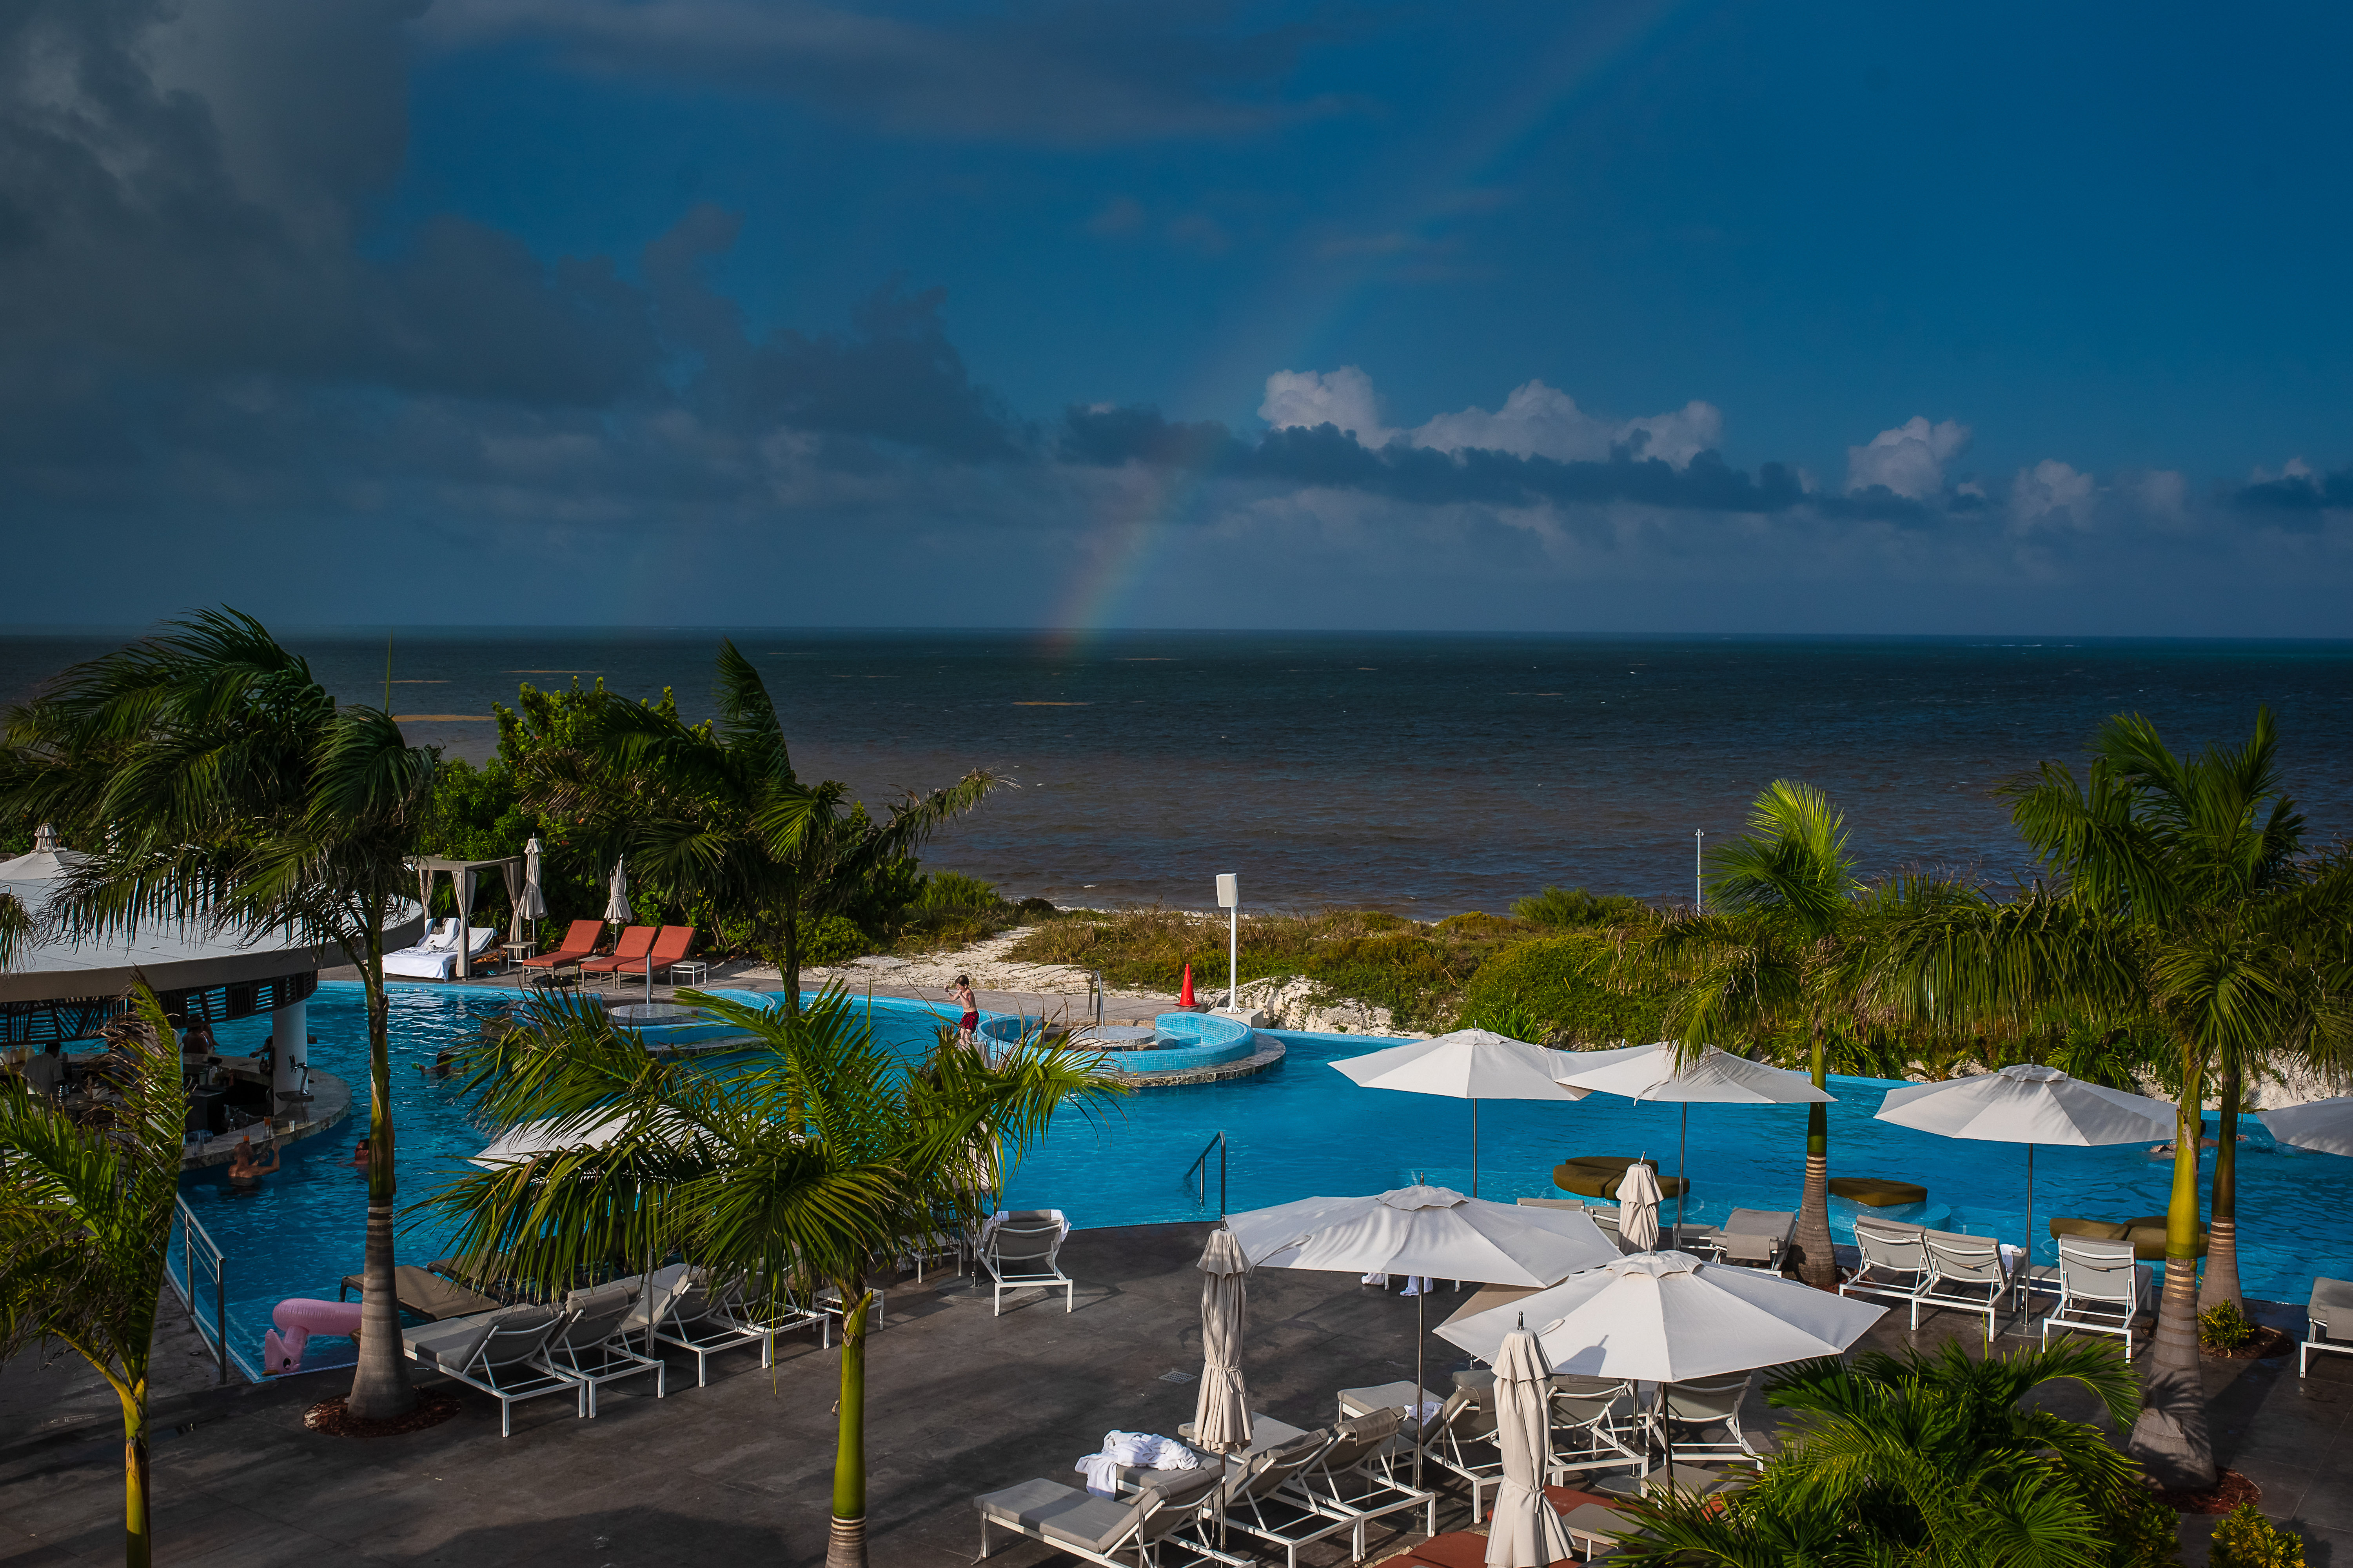 the rainbow in the sea with palm trees pool and blue sky in the grand of the moon palace hotel